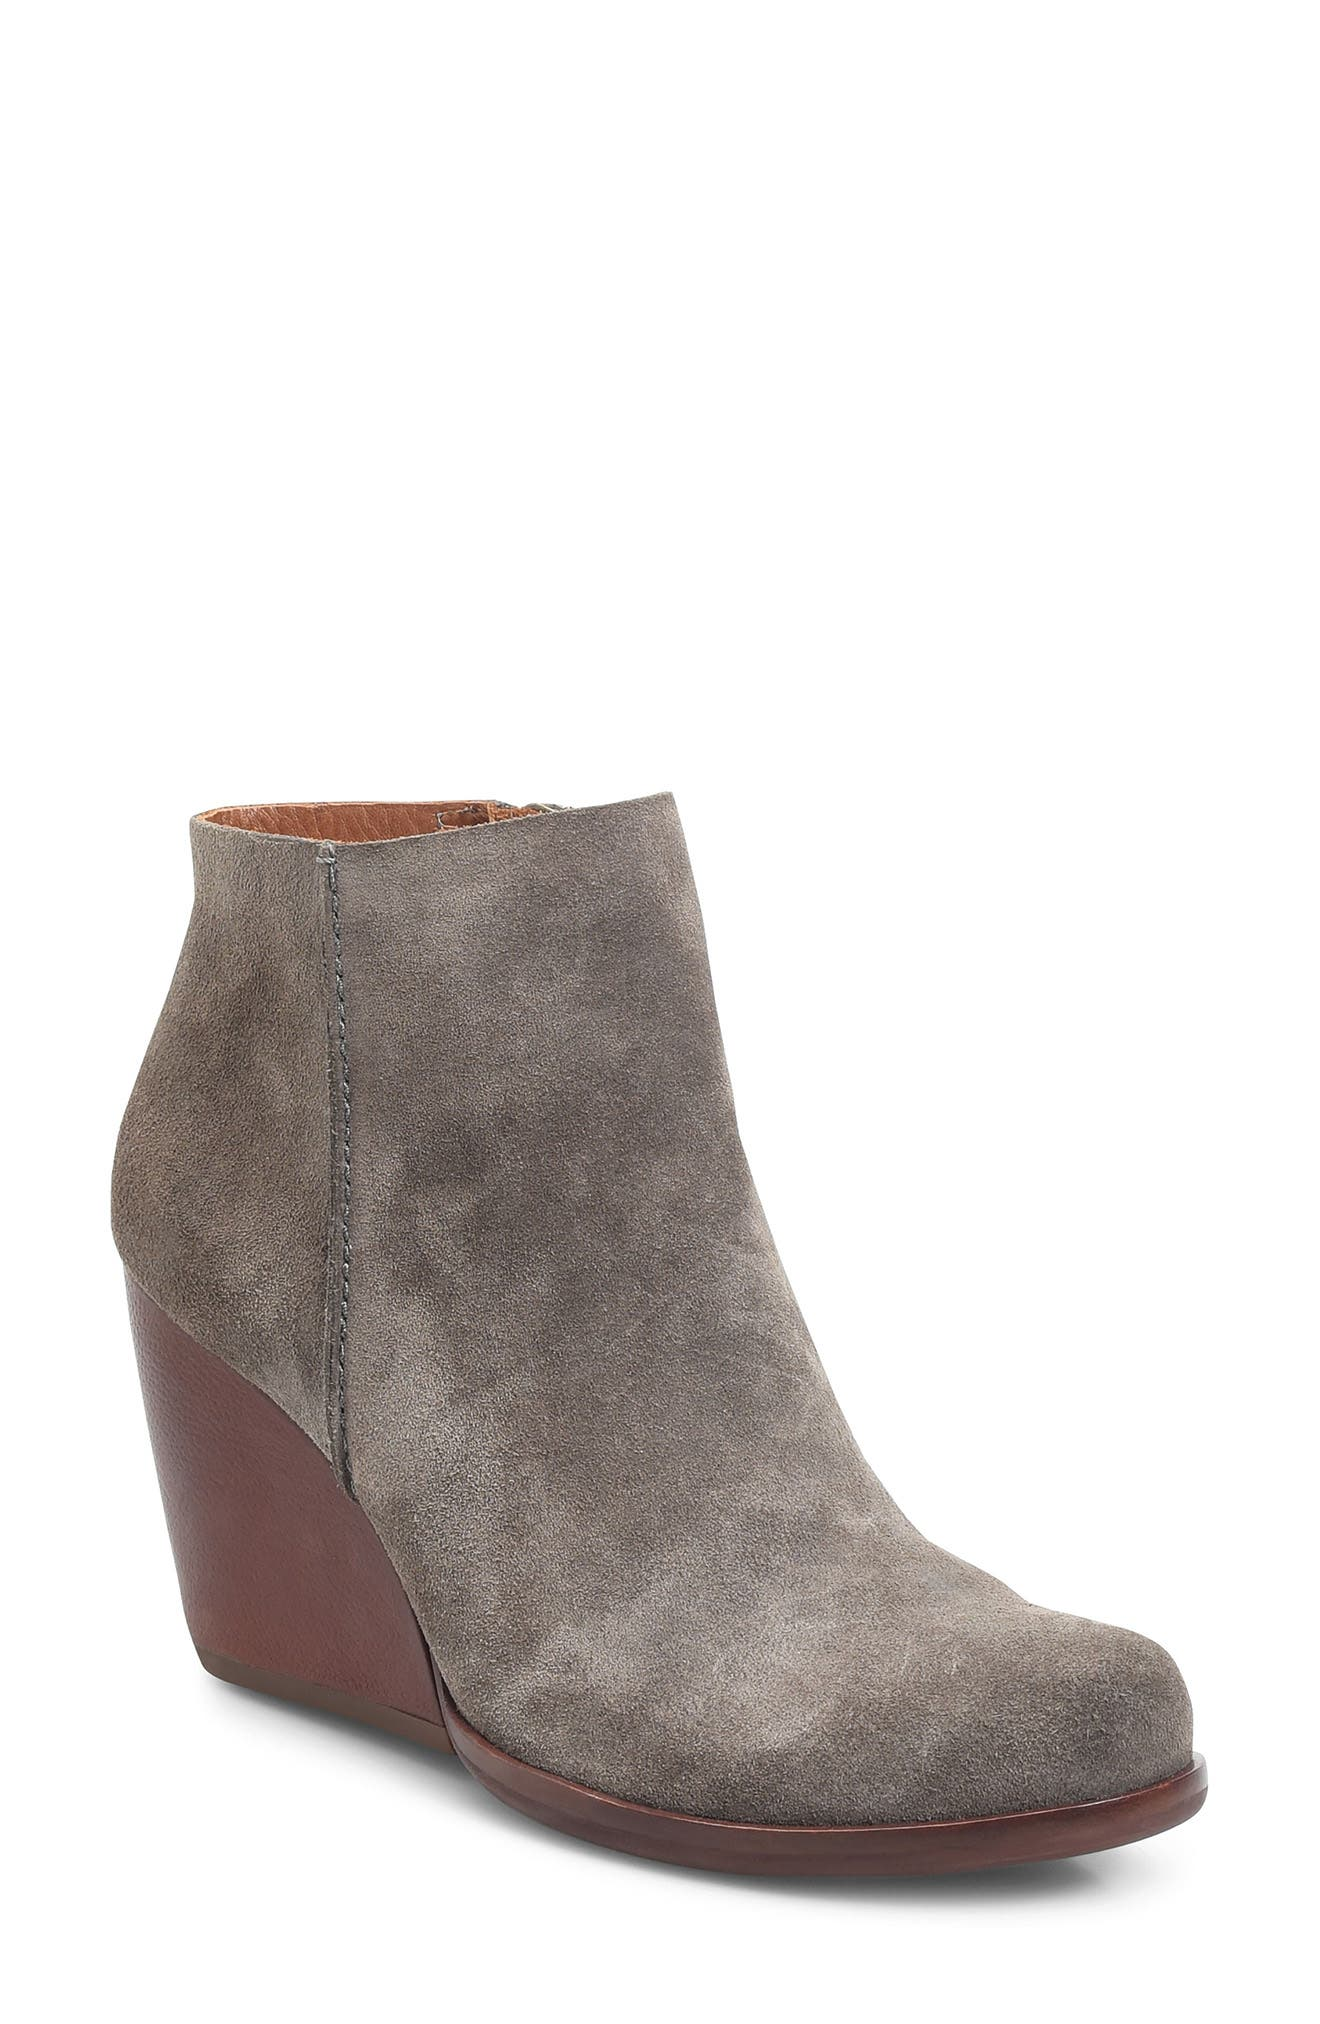 Natalya Wedge Bootie,                         Main,                         color, Grey Suede